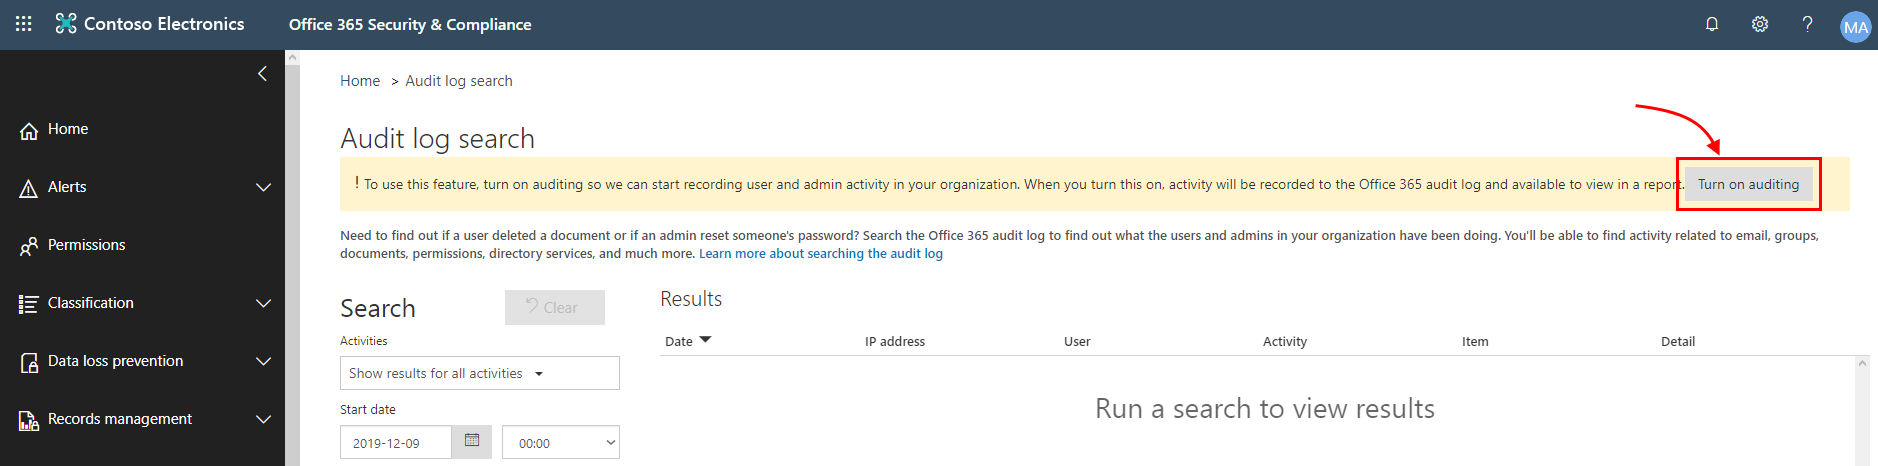 Microsoft 365 Security & Compliance Center - Turn on auditing